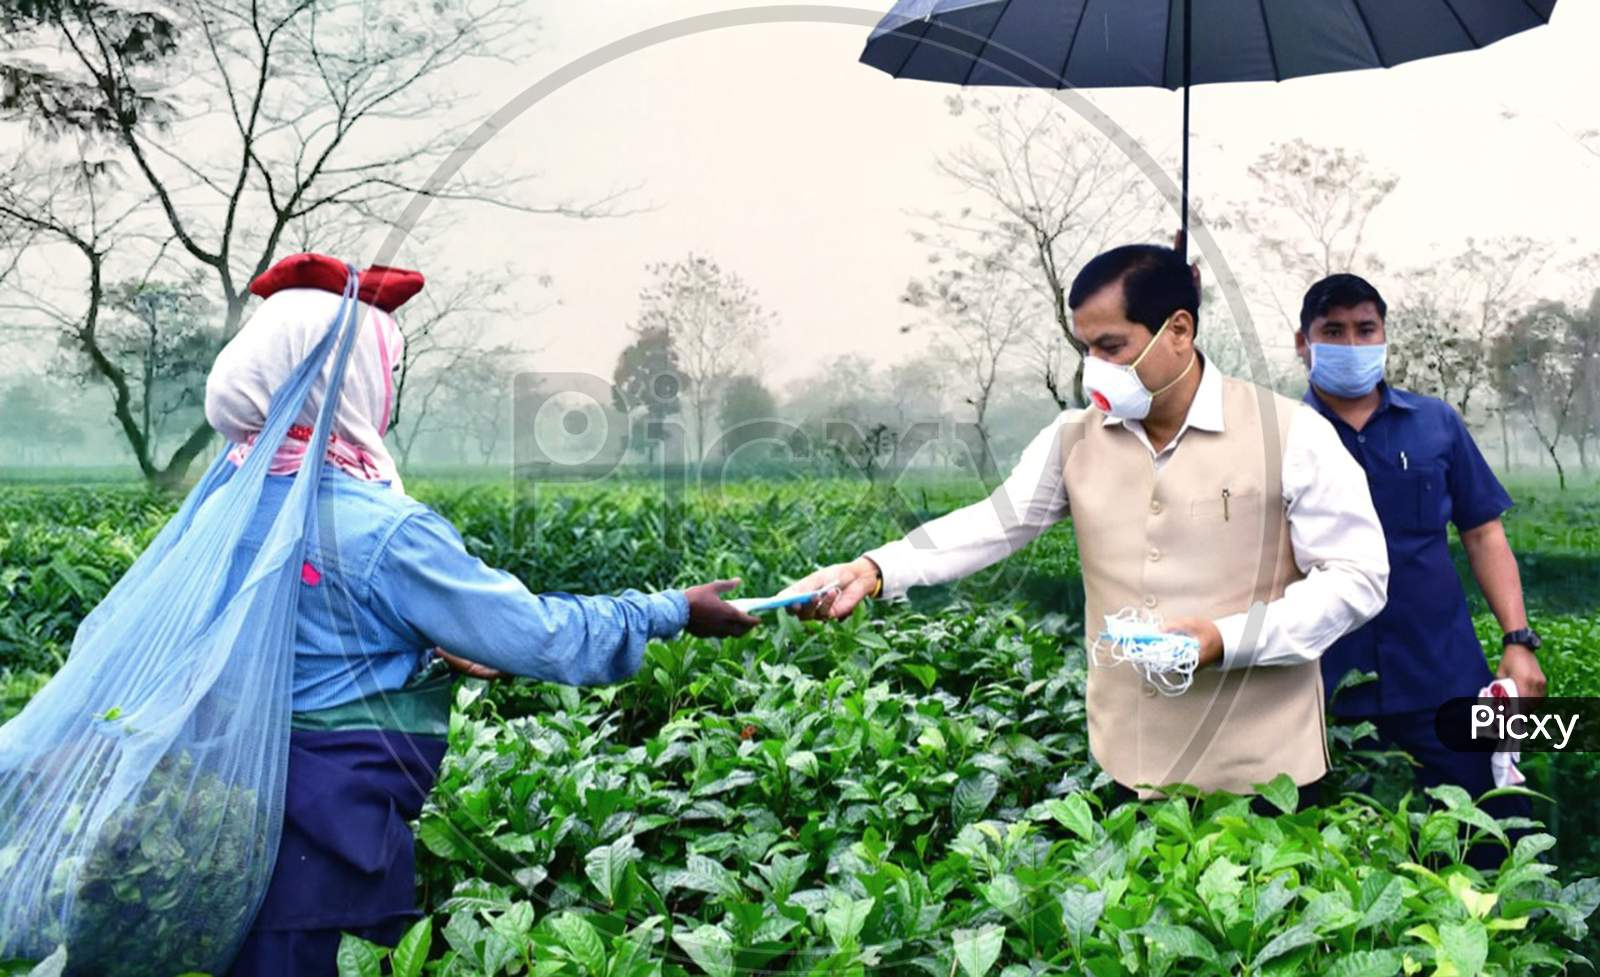 Assam Chief Minister Sarbananda Sonowal Distributing Face Mask Among The Tea Tribe Workers  During Nationwide Lockdown Amidst Coronavirus or COVID-19  Outbreak  in Dibrugarh District Of Assam On April 24,2020.